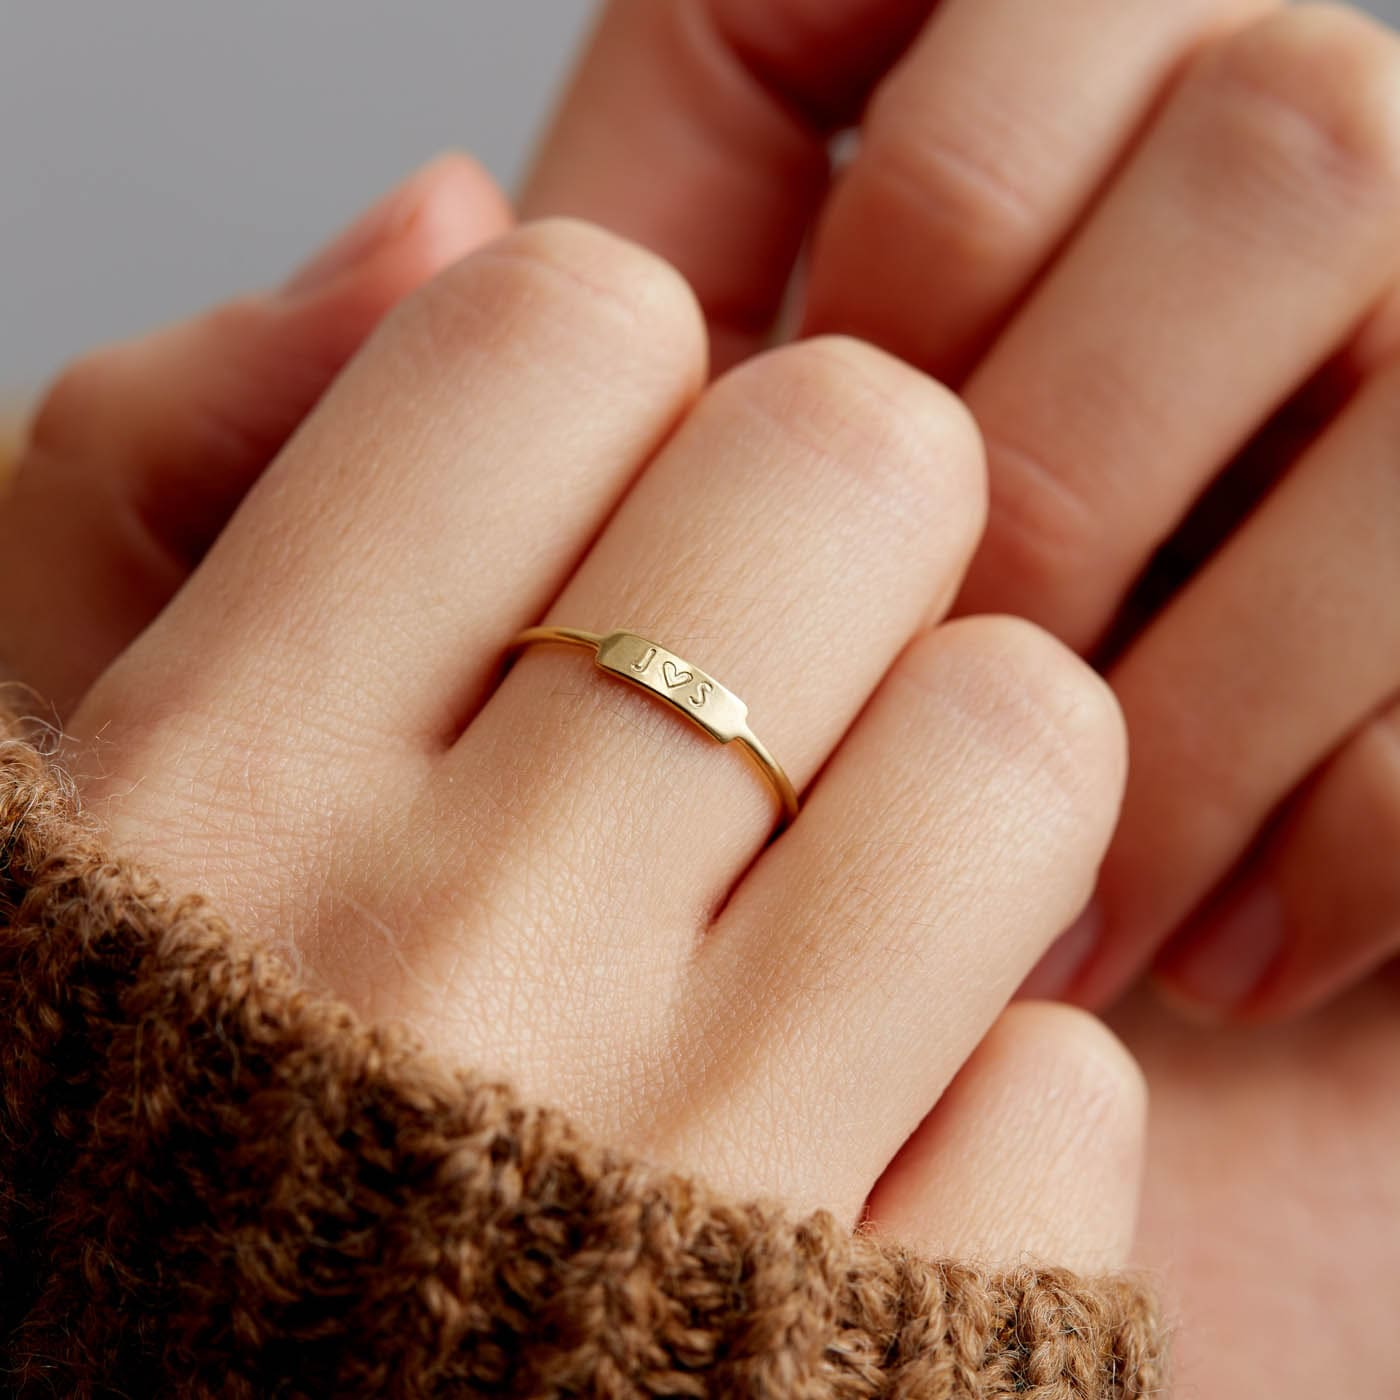 Natural One Diamond Wedding Ring For Her Details about  /solid 14K Gold with engraving on ring